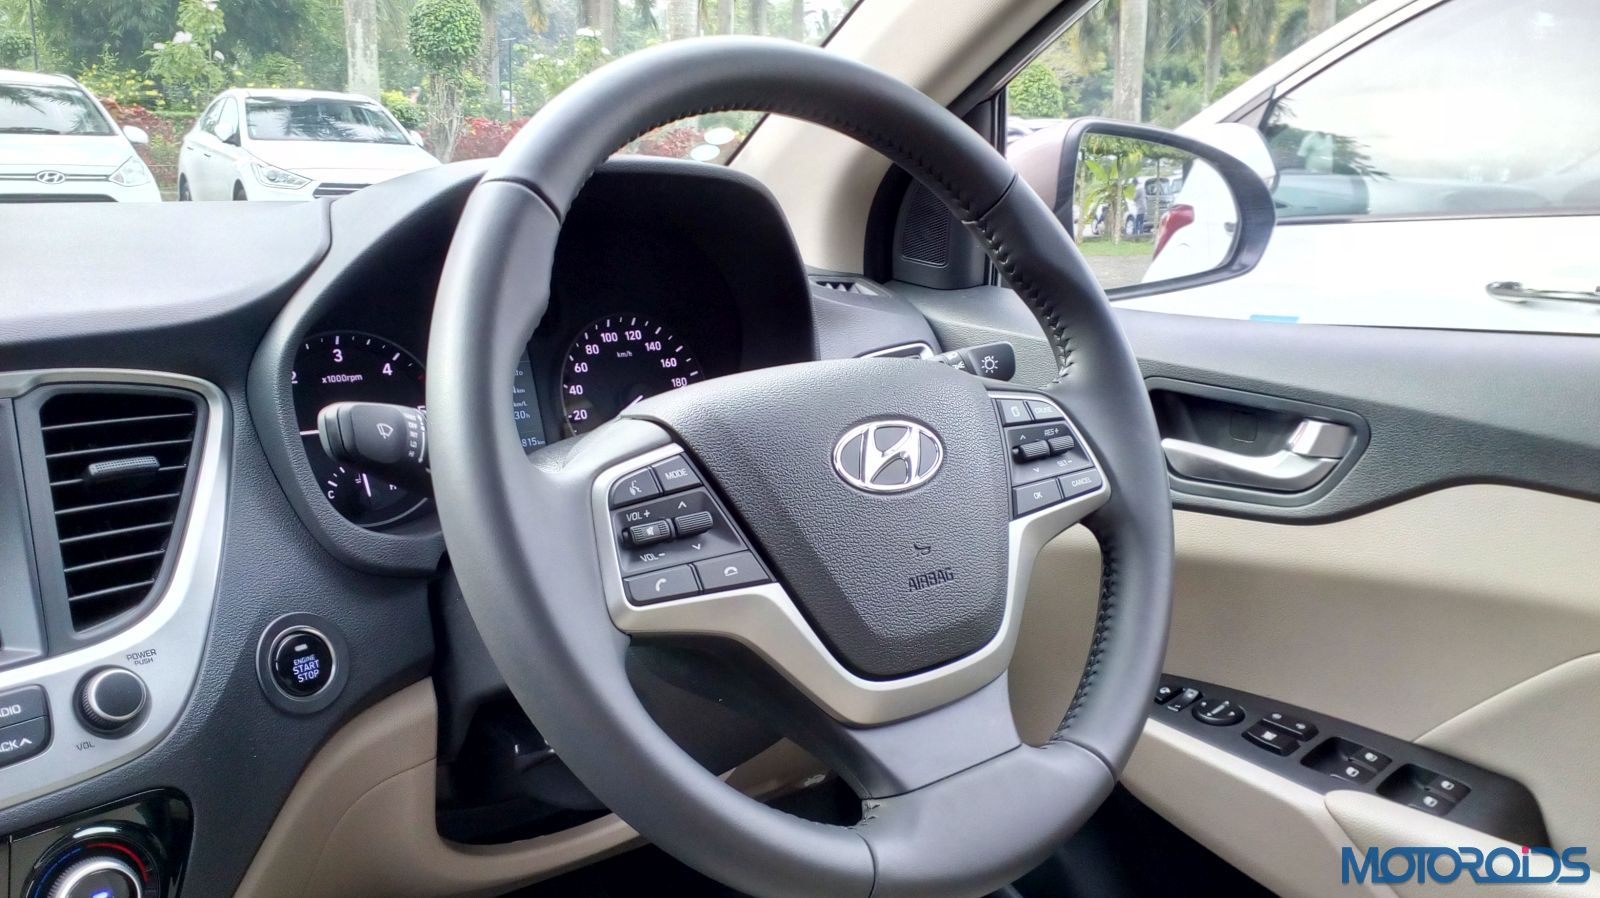 August 28, 2017-New-2017-Next-gen-Hyundai-Verna-steering-wheel36.jpg